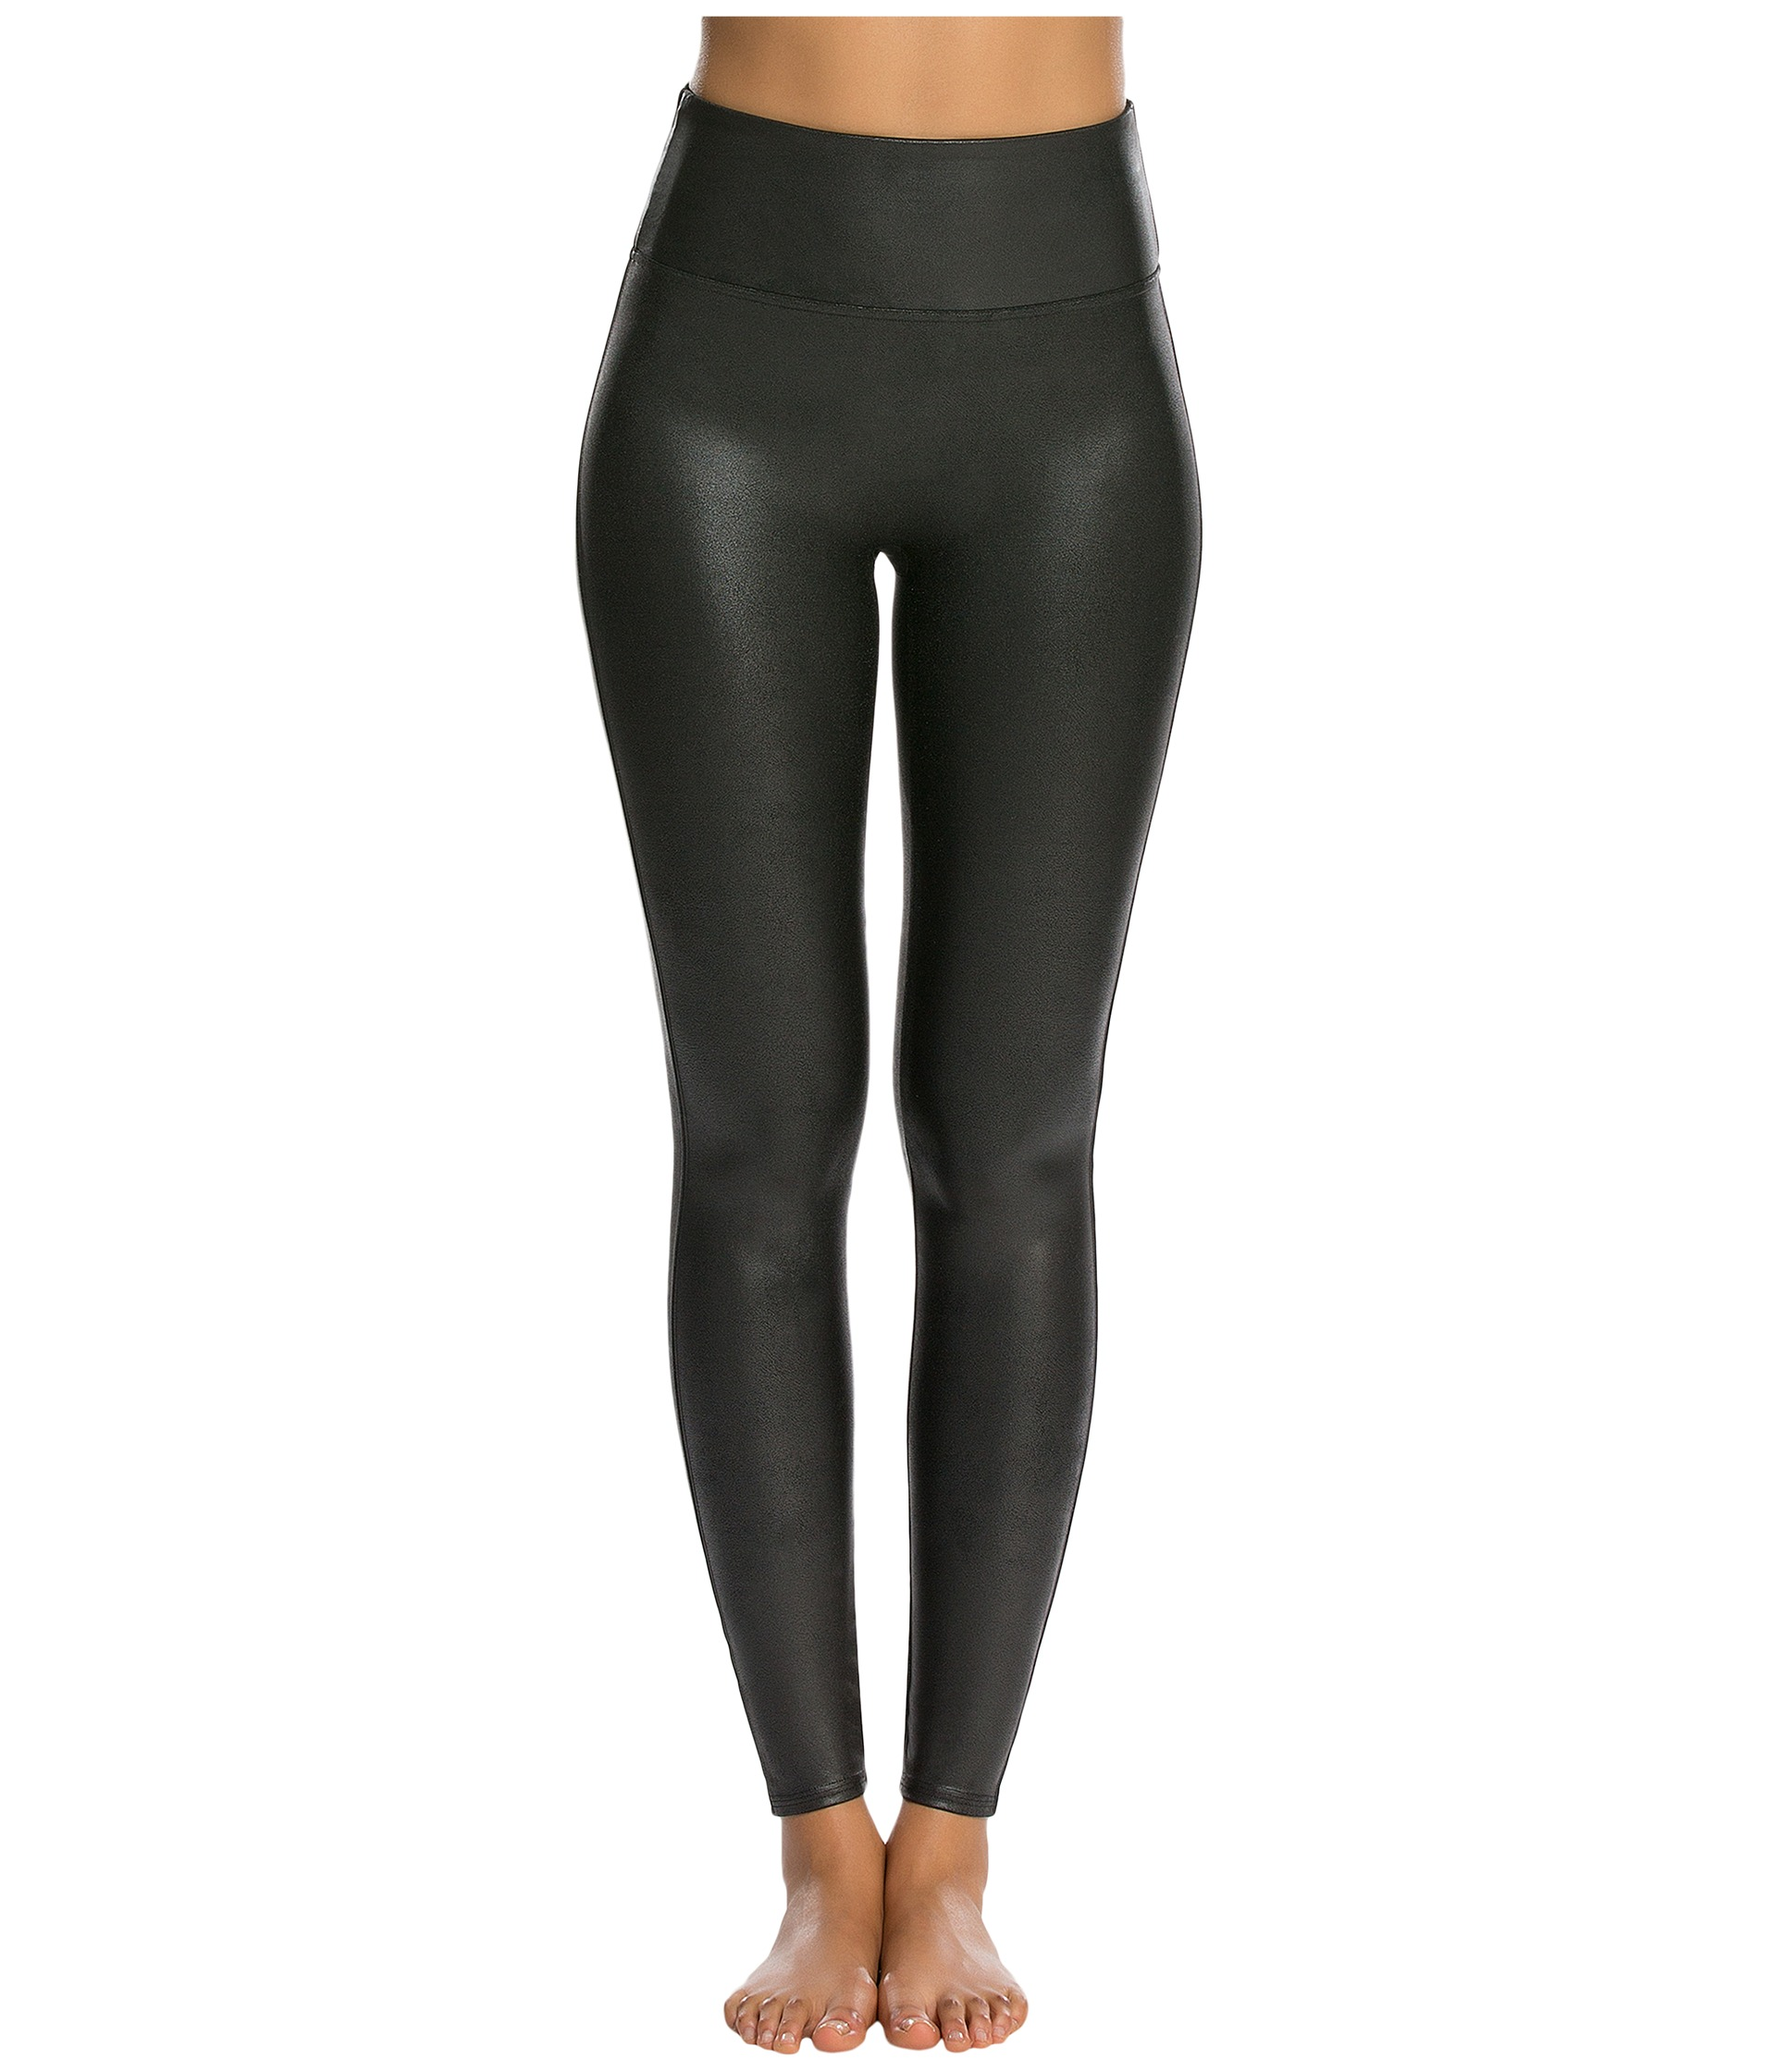 Find faux leather leggings that work great as casual wear, and select options with different leg cuts to complement your fashion-forward look. Ultra-tight legs look great with longer tops and boots, while boot-cut legs make an excellent choice for work and pair well with pumps.